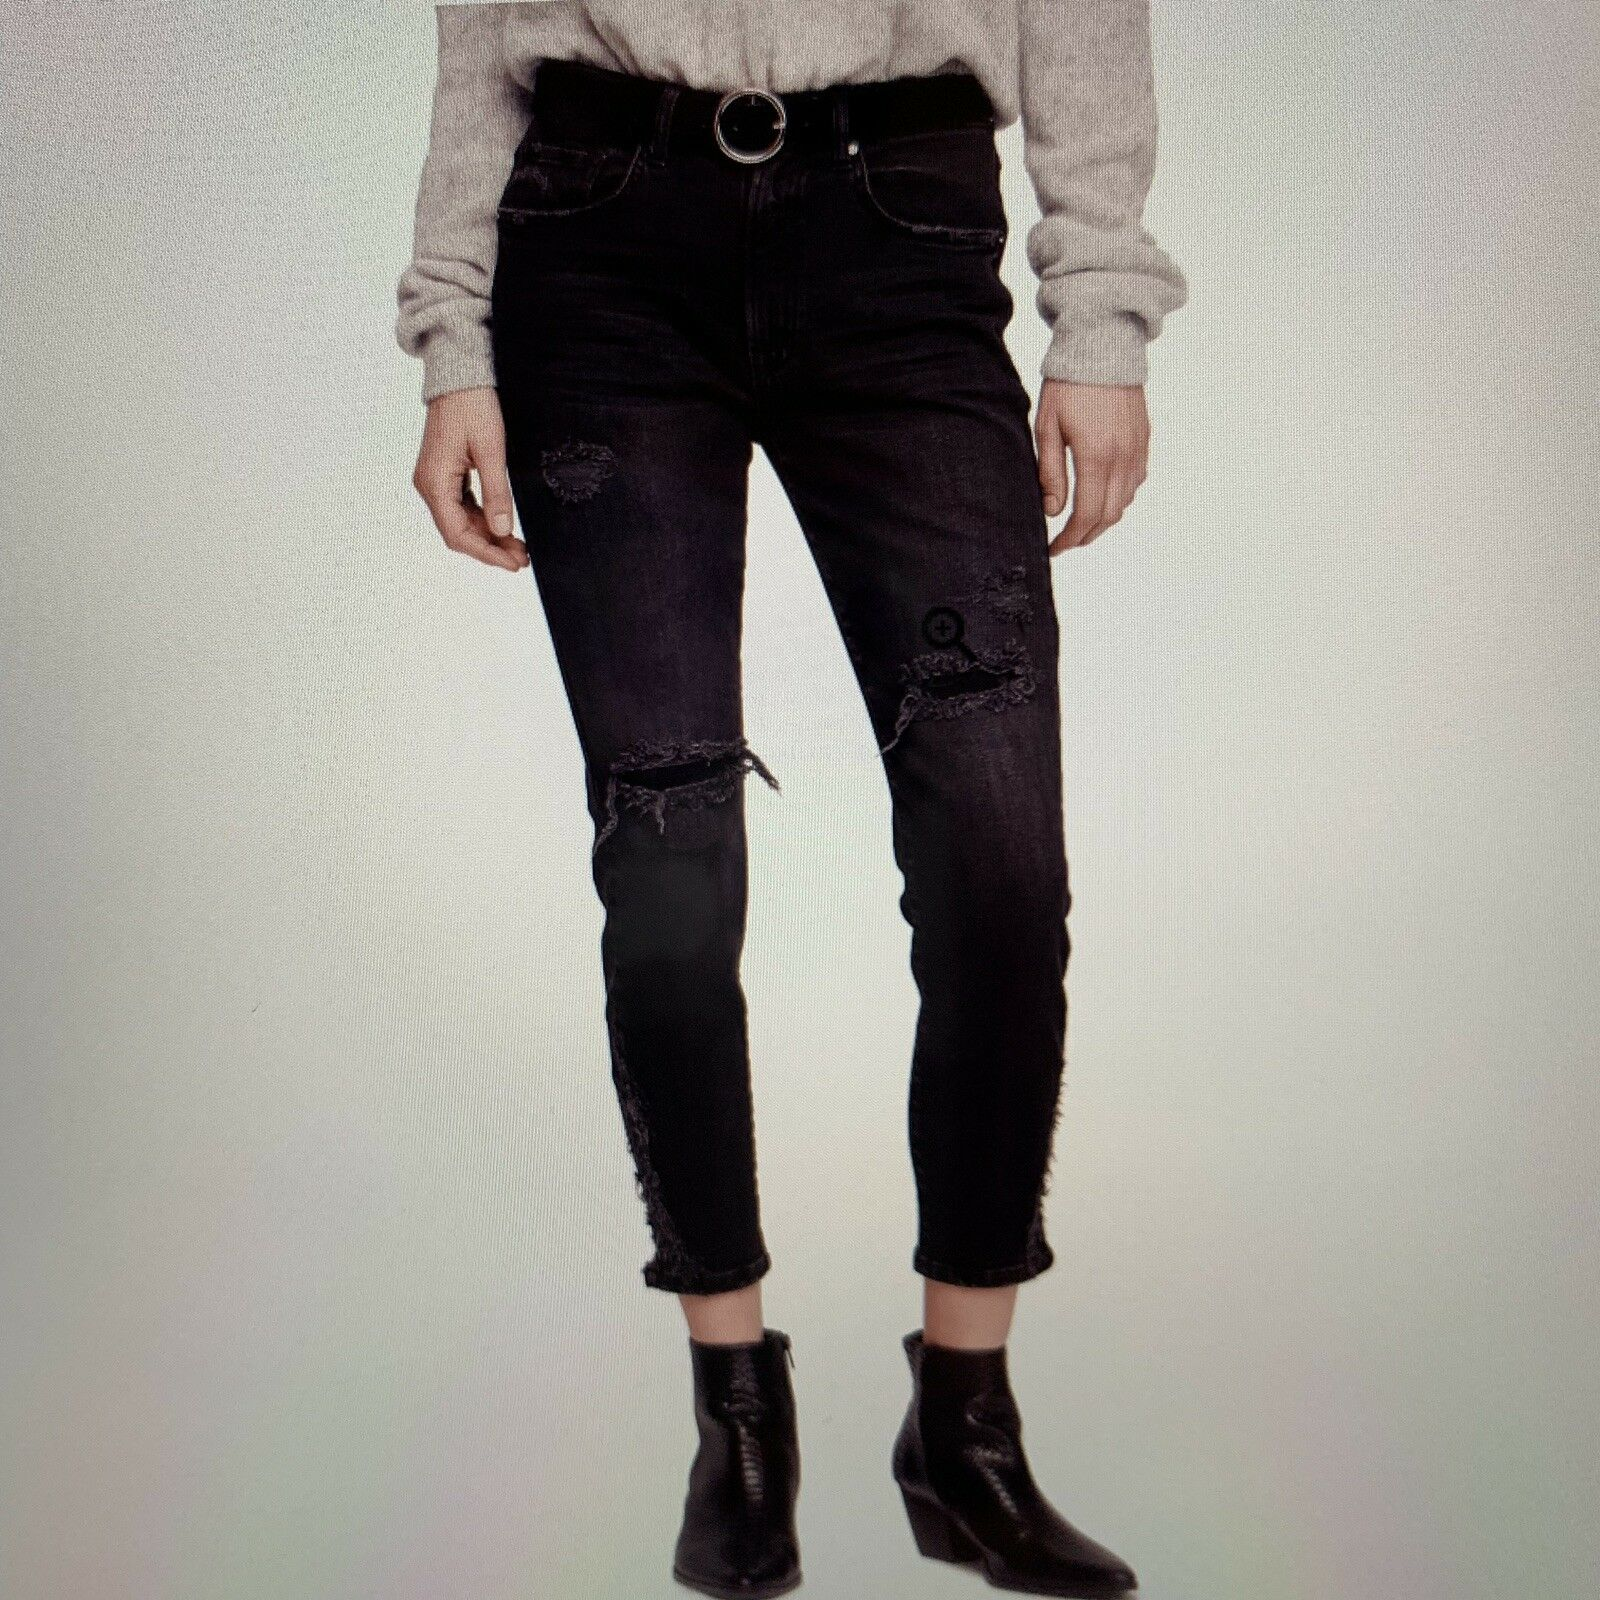 FREE PEOPLE About A Girl Distressed Ripped High Waist Crop Skinny Jeans NWT